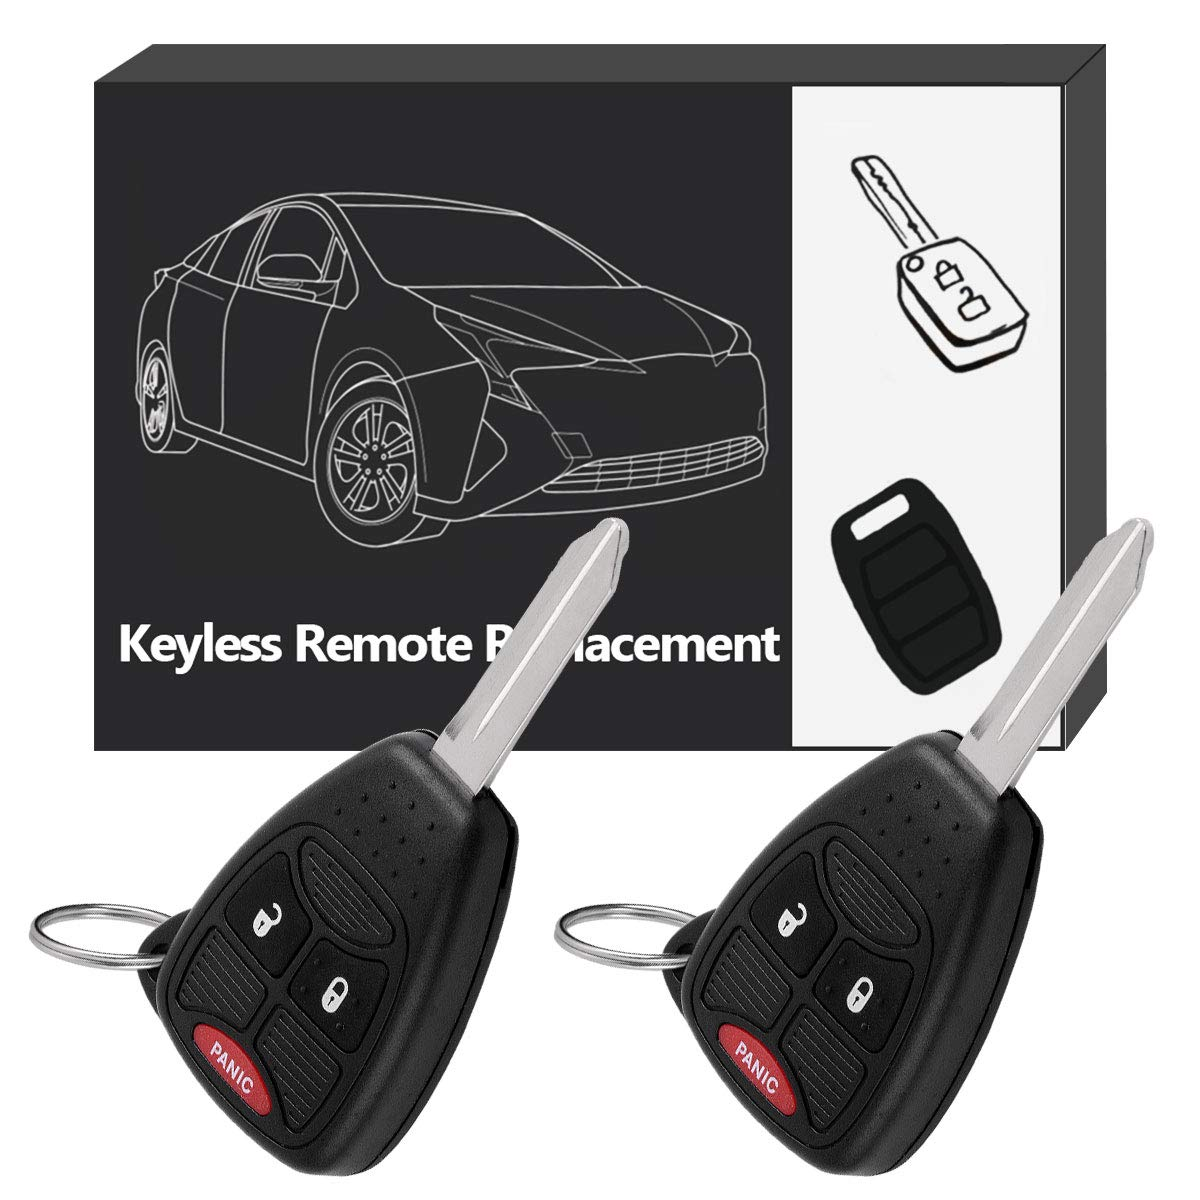 YITAMOTOR Key Fob Replacement for M3N5WY72XX Keyless Remote Control Car Ignition 3-Button Compatible for 2004 2005 2006 2007 Dodge Caravan Grand Caravan Chrysler Town and Country